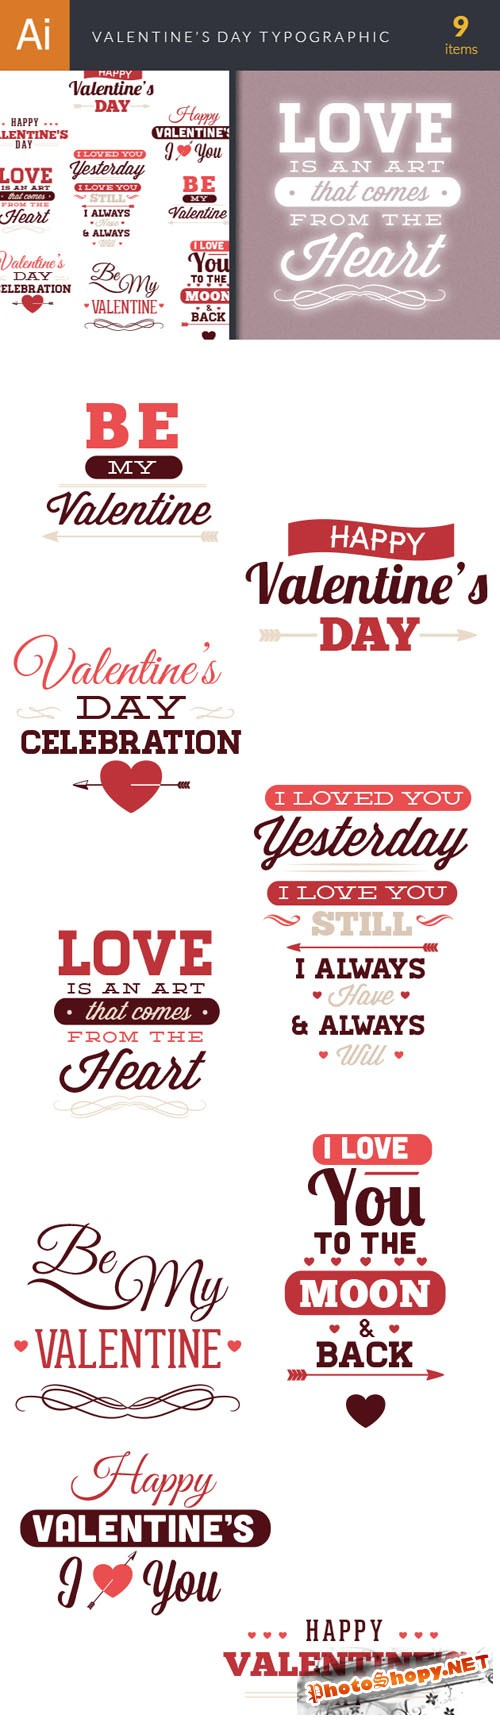 Valentine's Day Typographic Vector Elements Set 1